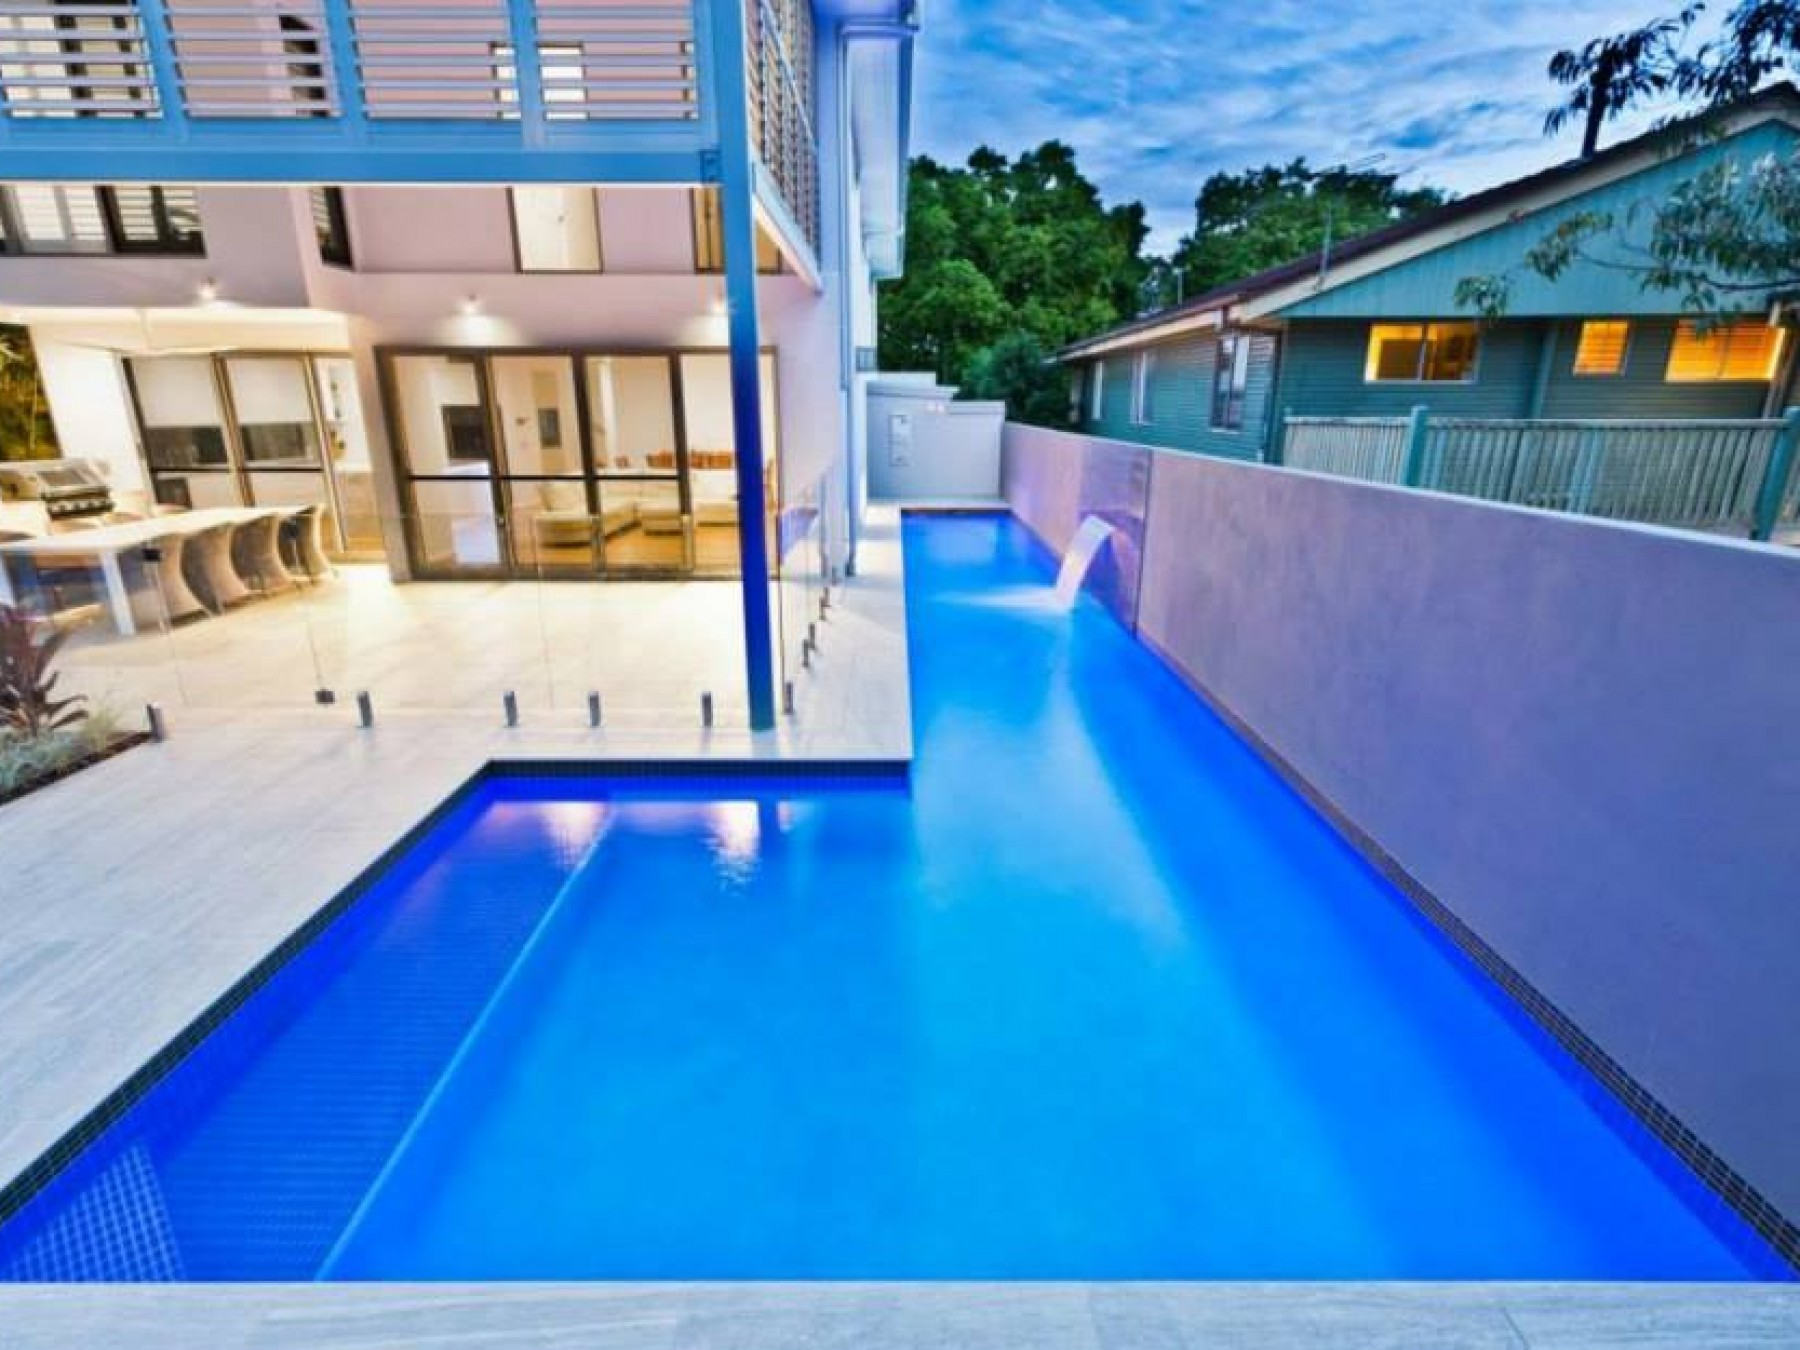 Selling or Leasing a pool in Brisbane